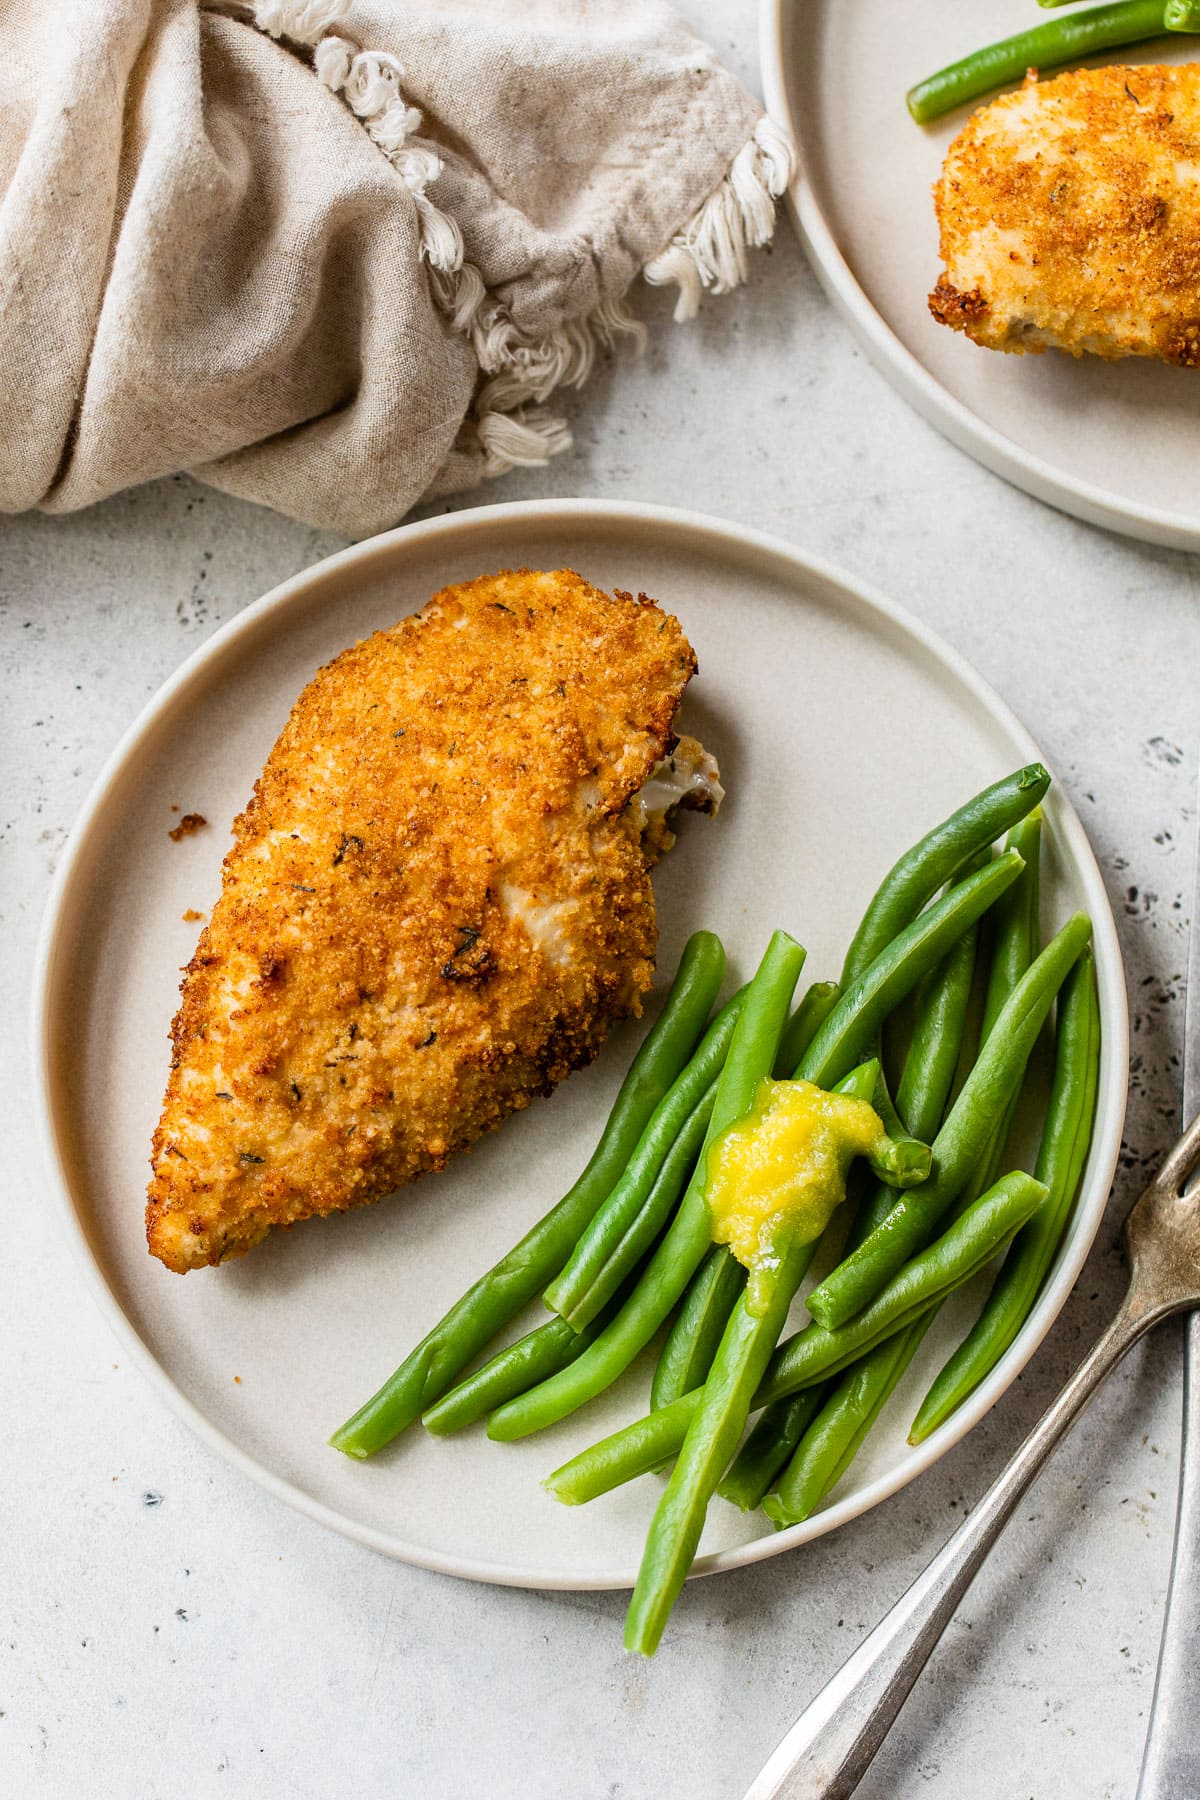 crispy air fryer fried chicken breast and green beans on a plate